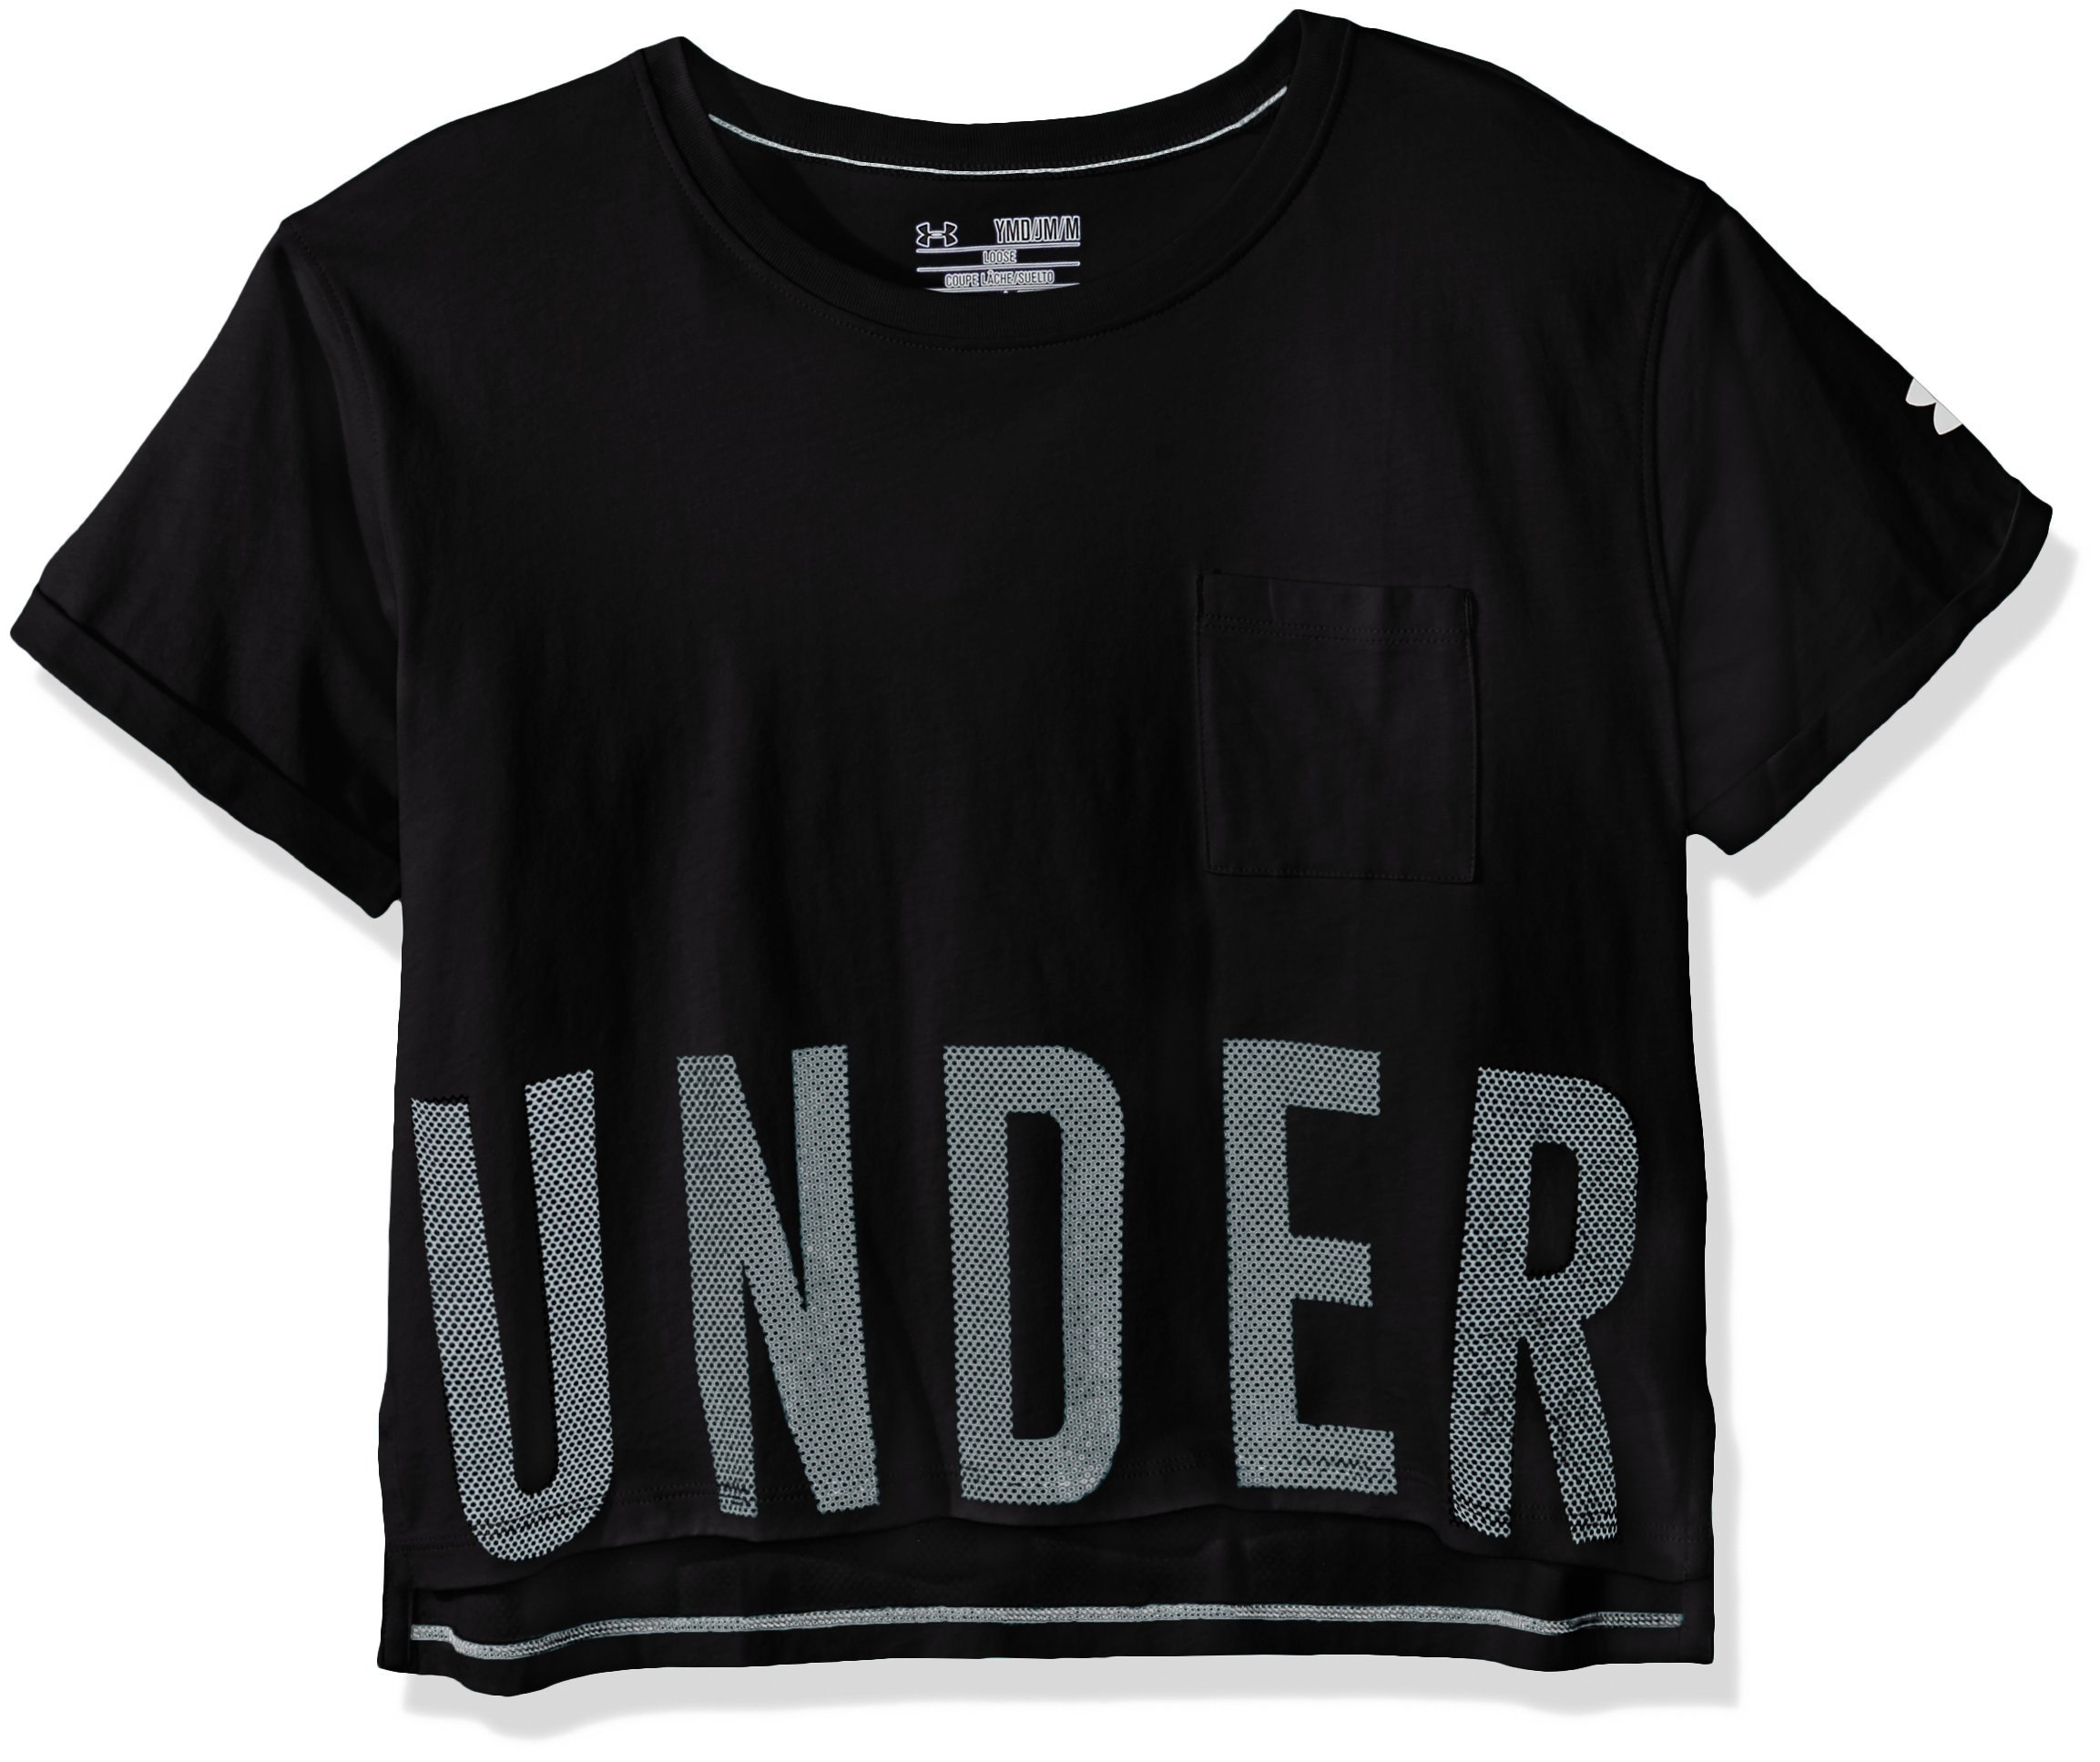 Under Armour Girls' Studio Short Sleeve T-Shirt, Black /White, Youth X-Large by Under Armour